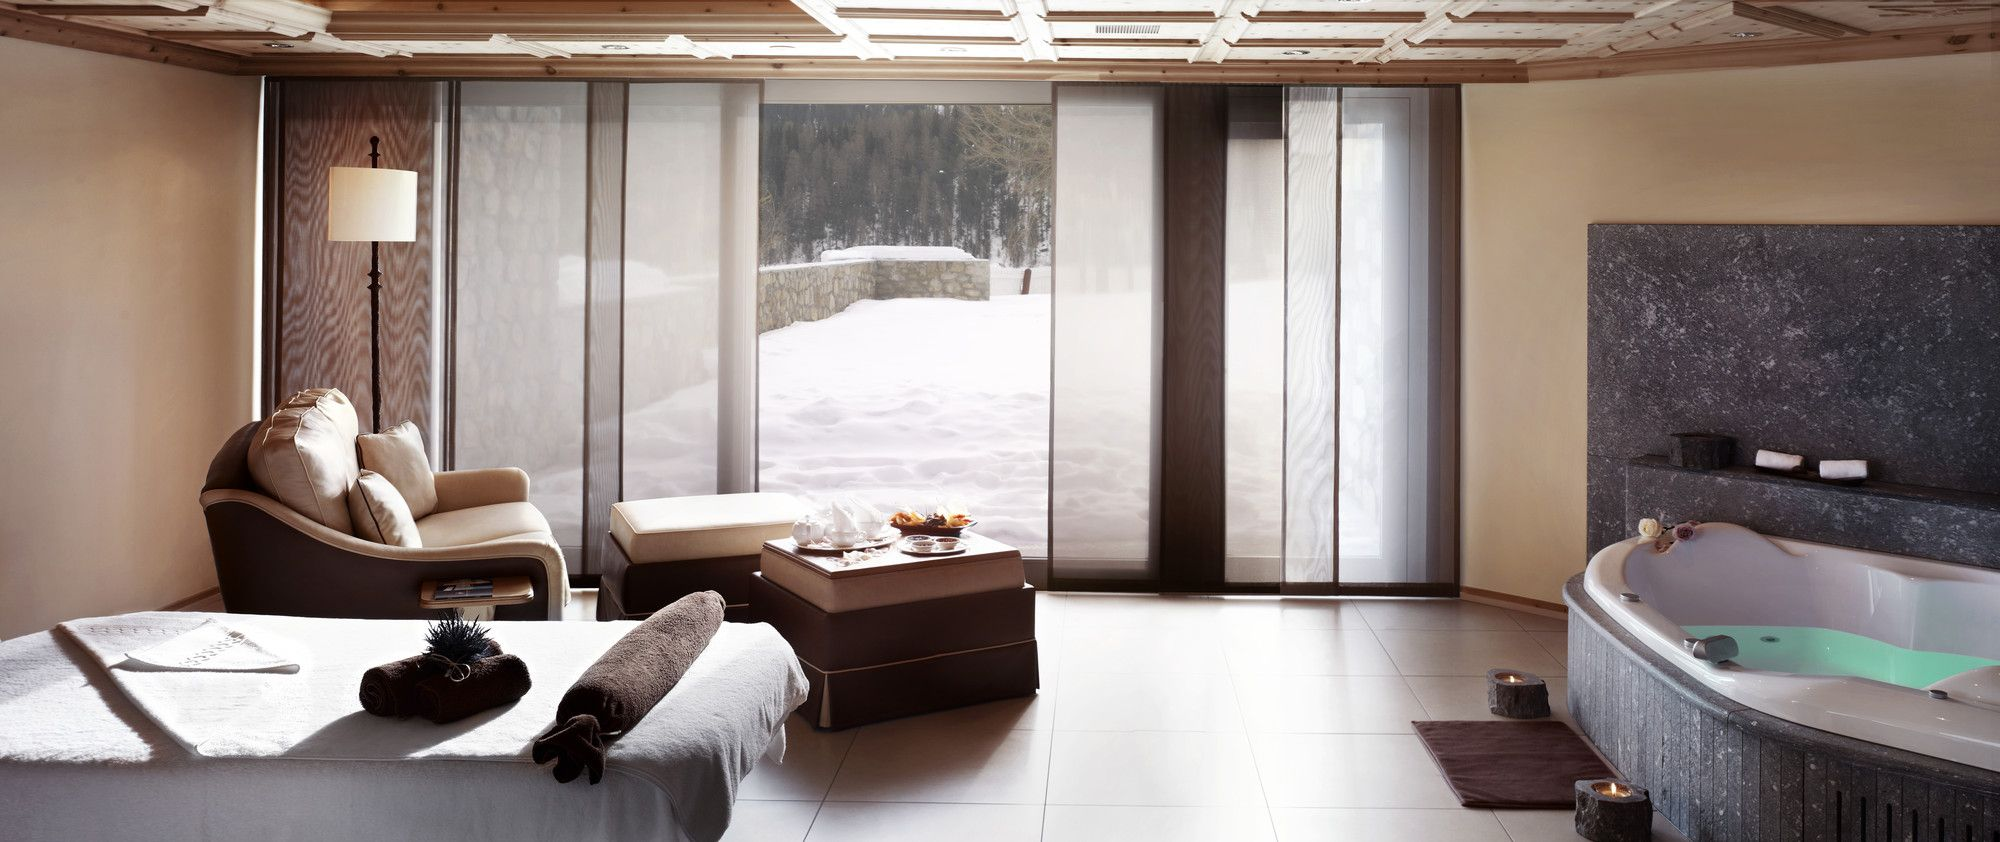 Snowy winters in St. Mortiz are best spent in the Palace Wellness